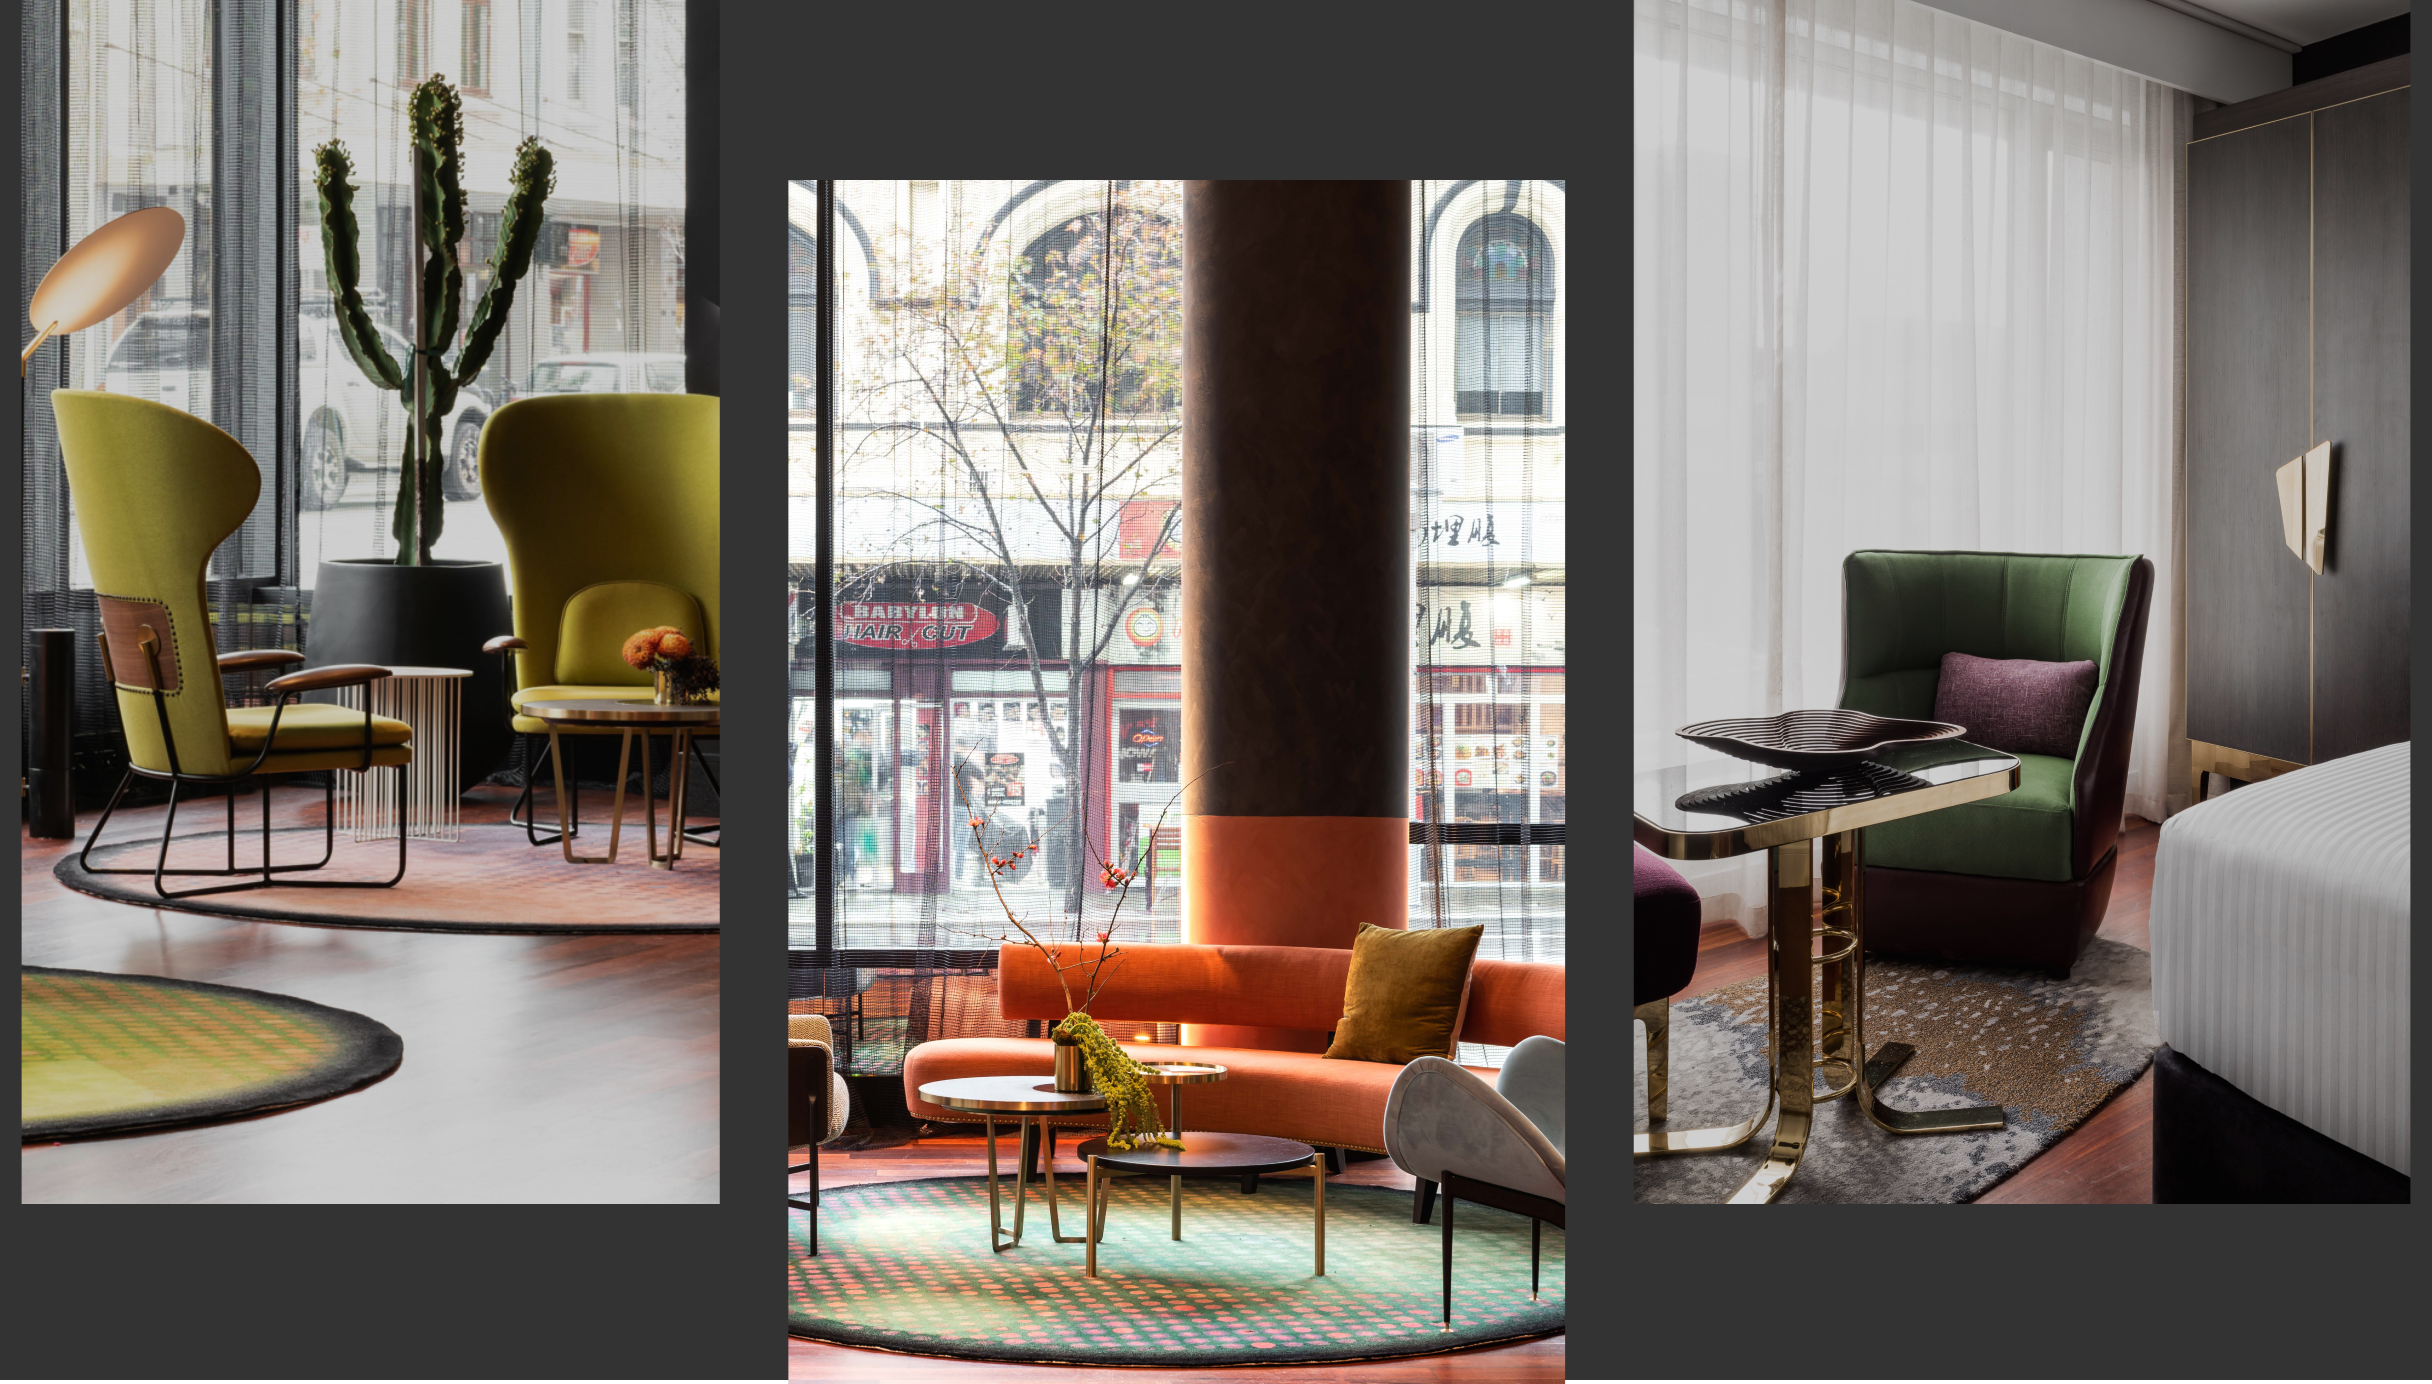 Three images showcasing different luxury lounges inside QT hotels